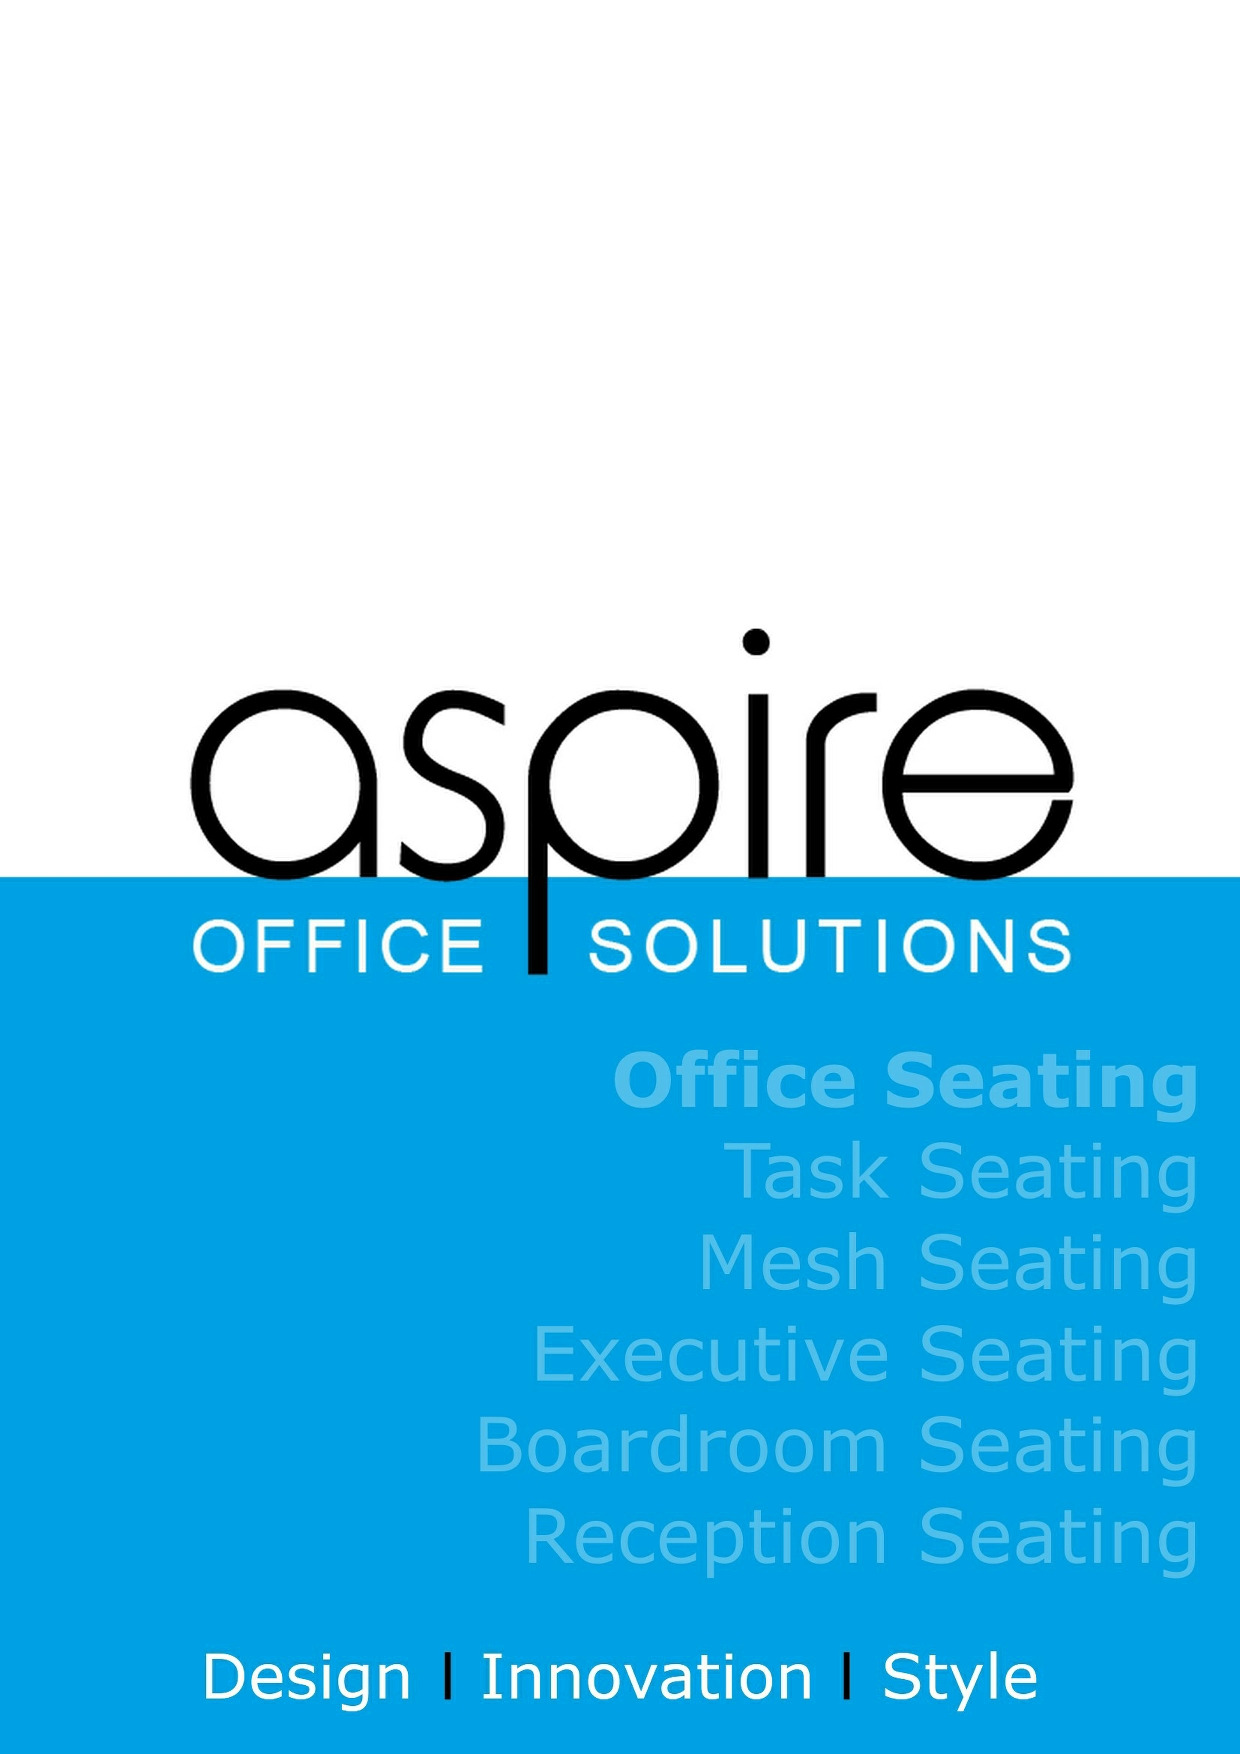 3_Aspire_Office_Solutions_-_Seating_Brochure